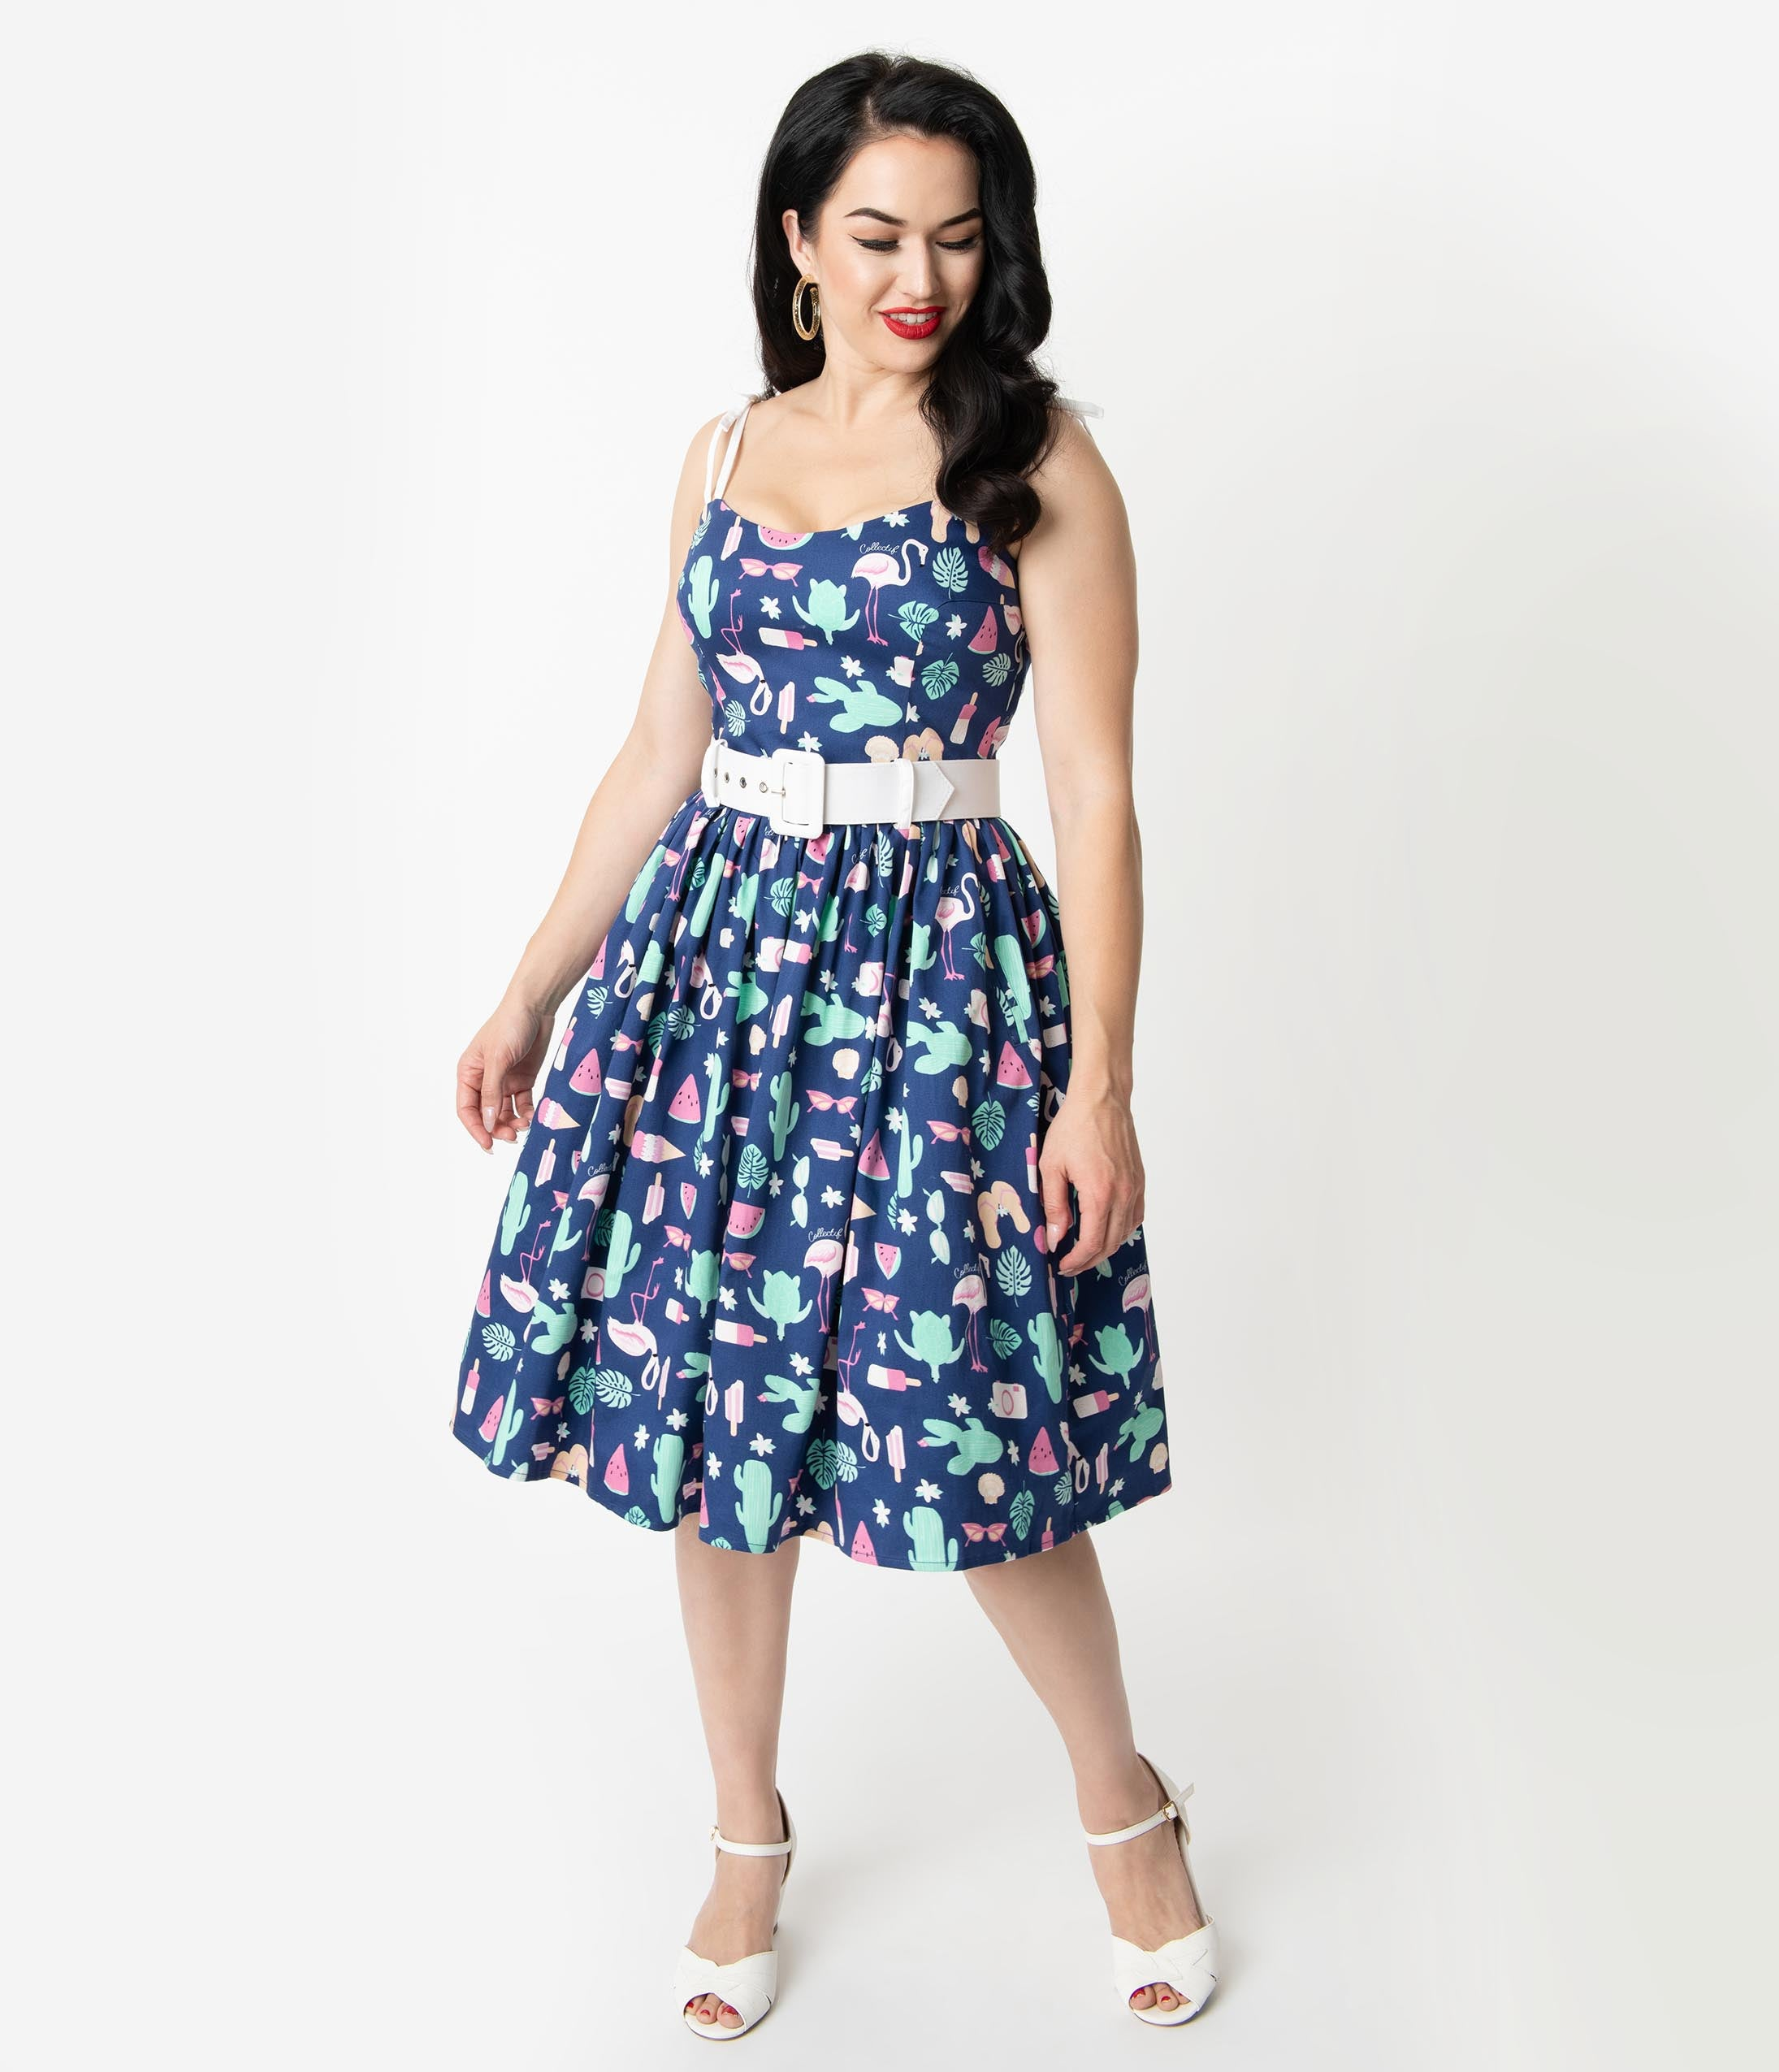 New Fifties Dresses | 50s Inspired Dresses Collectif 1950S Style Navy Blue Summer Flamingo Print Jade Swing Dress $78.00 AT vintagedancer.com